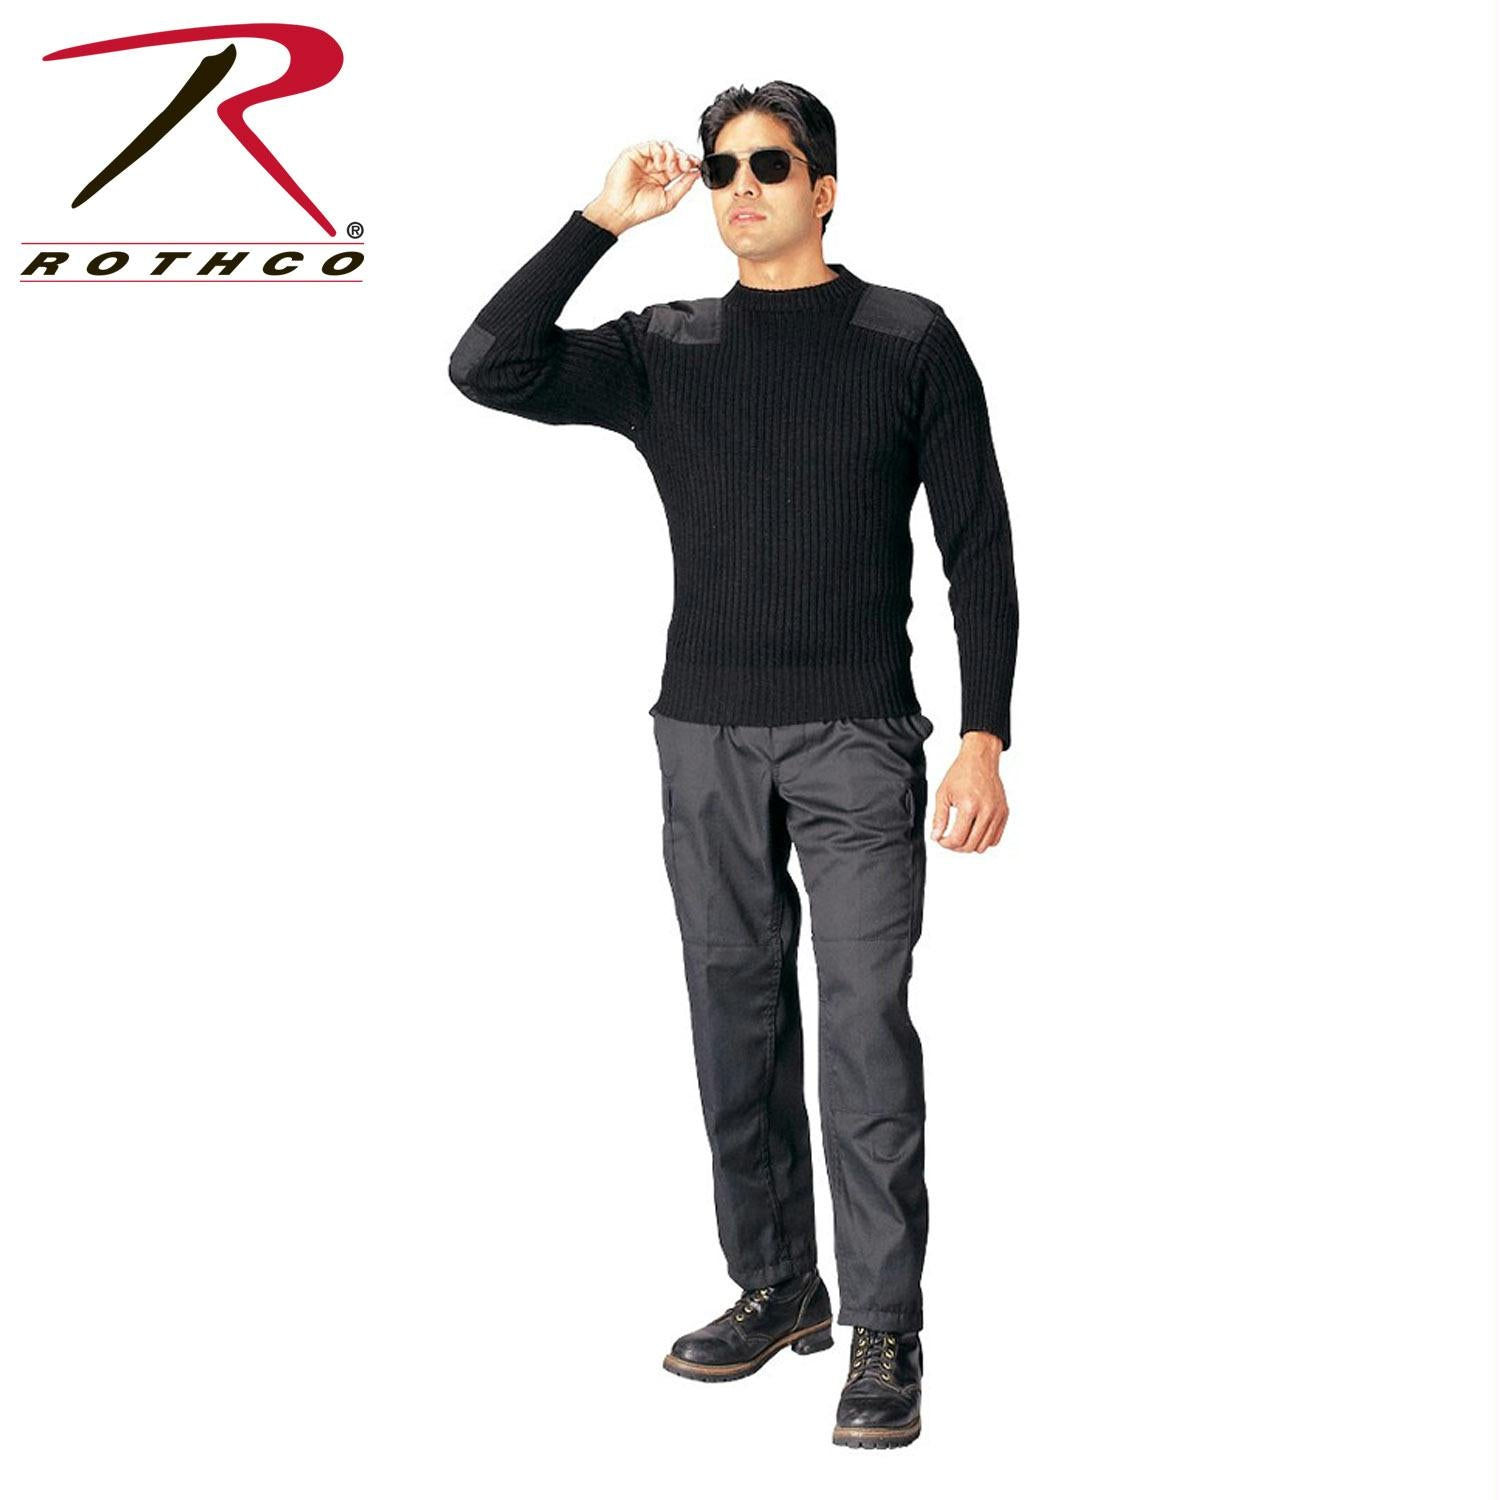 Rothco Government Type Wool Commando Sweater - 50 / Black